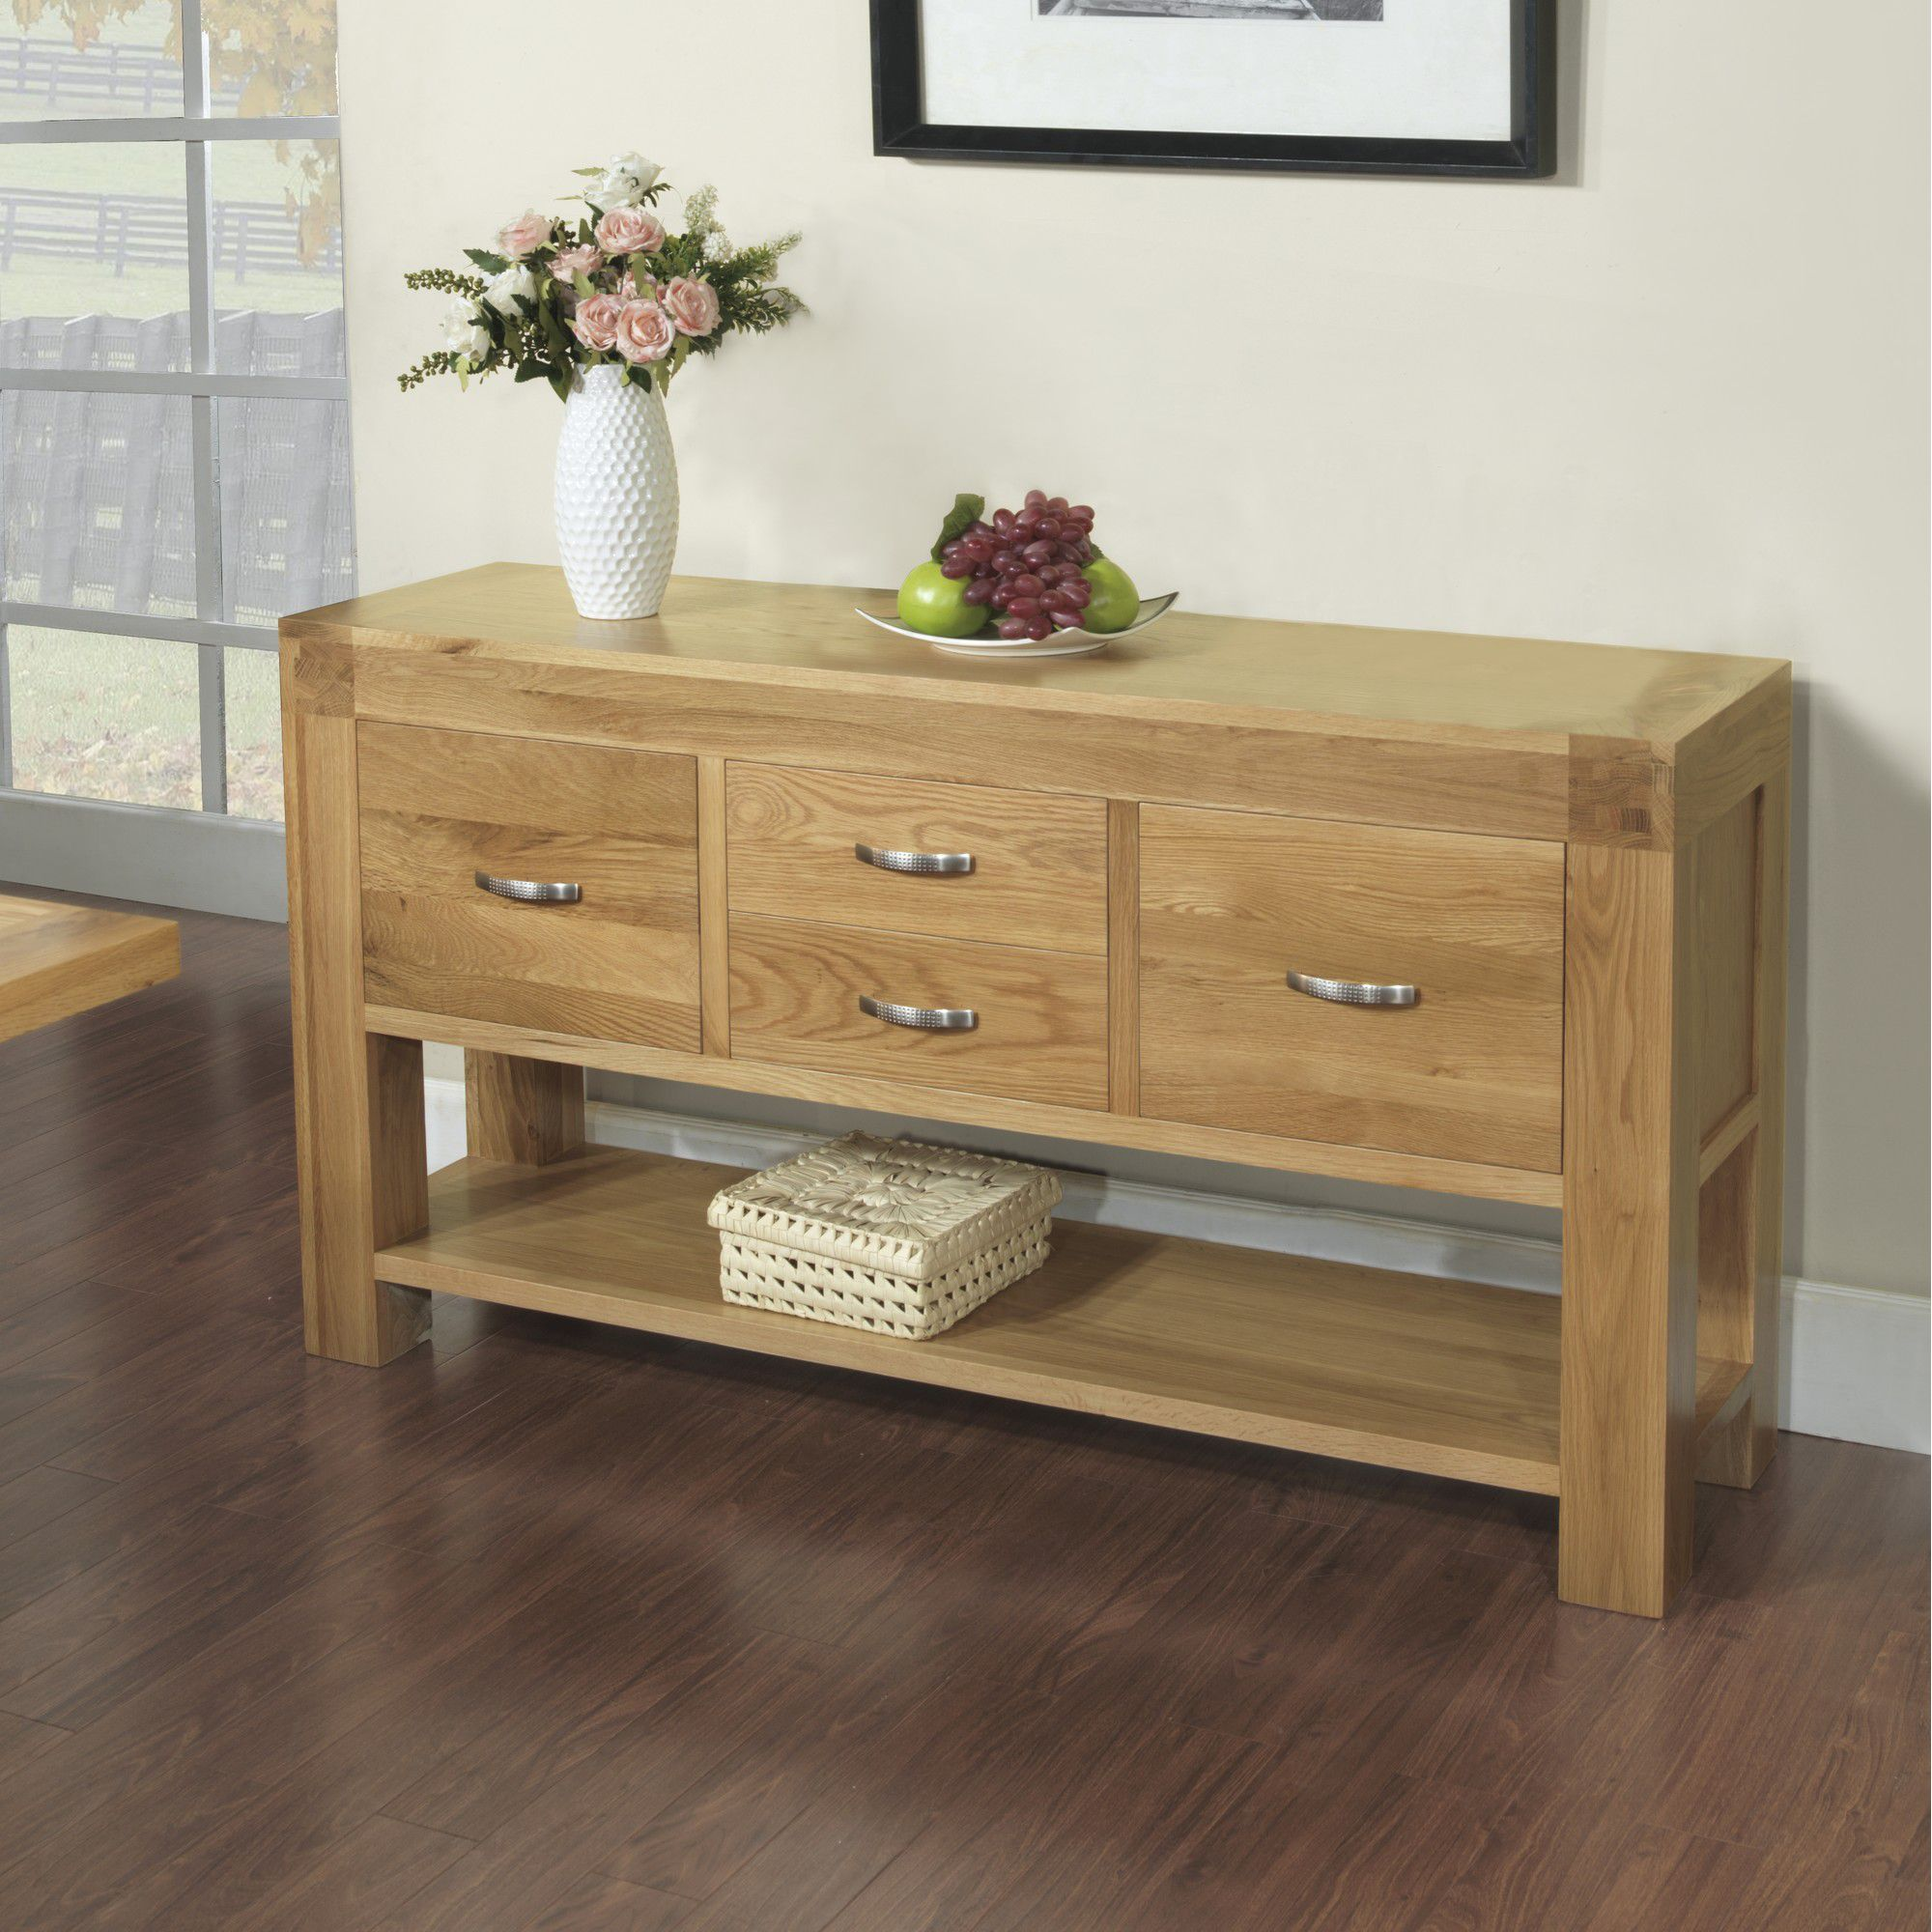 Hawkshead Rustic Oak Blonde Hall Table at Tesco Direct